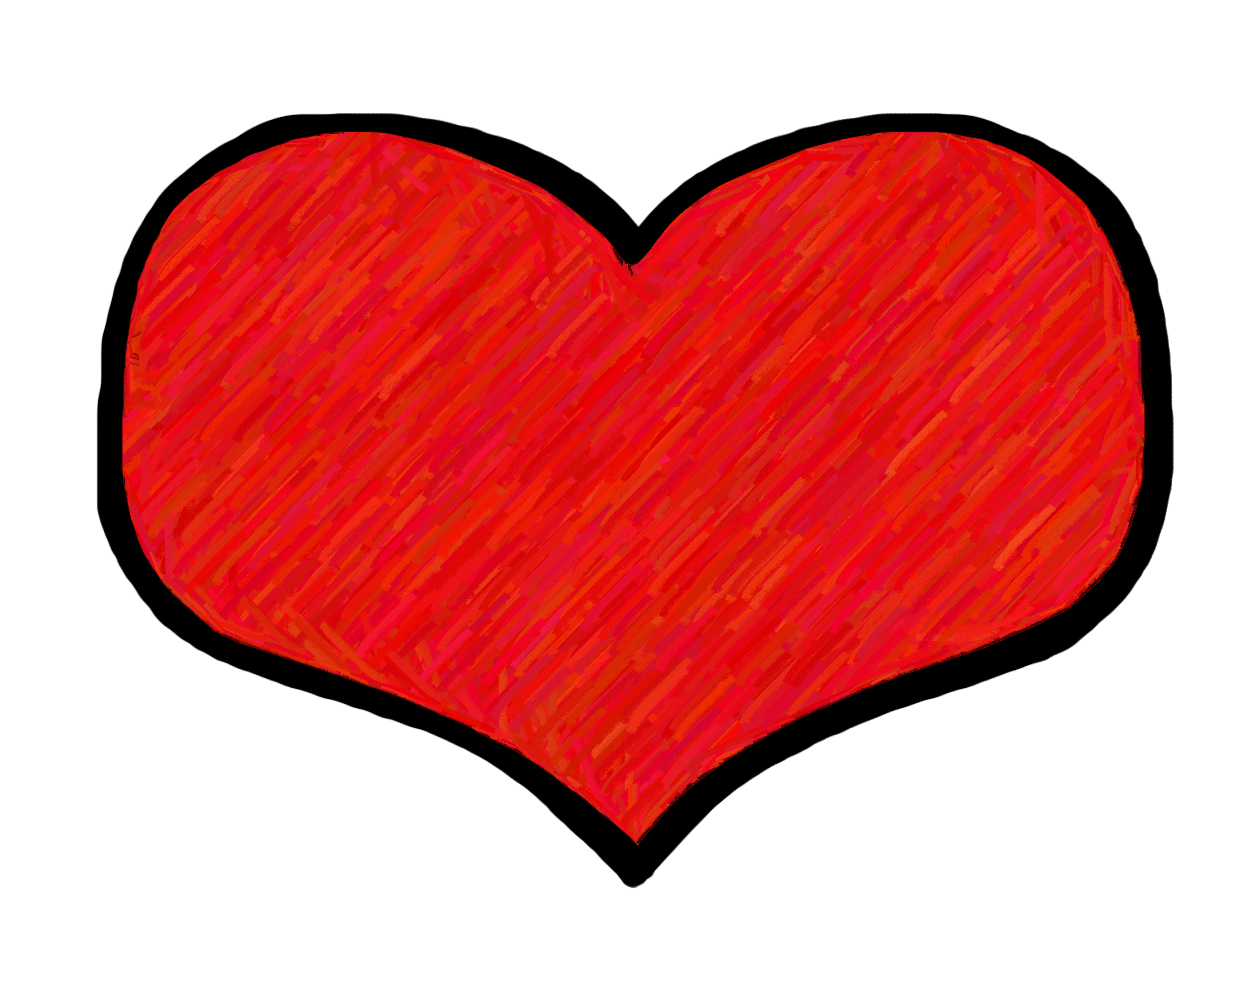 1260x994 Free Hearts Clip Art Pictures